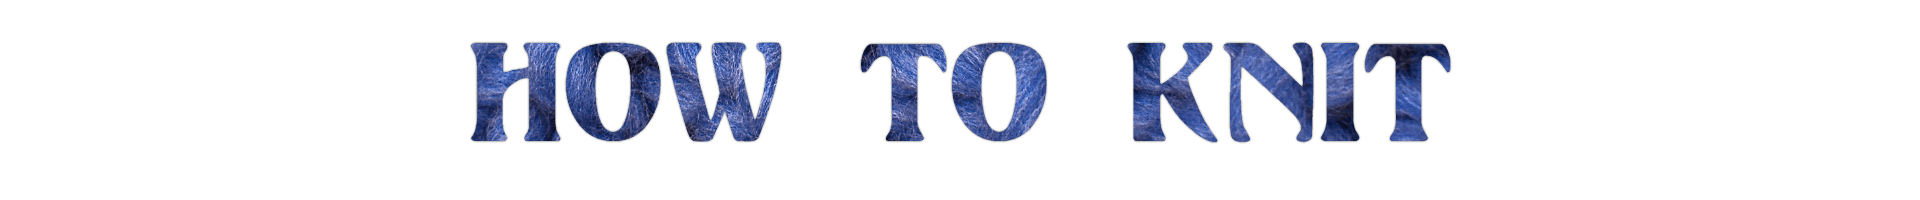 Title- How to Knit- Blue